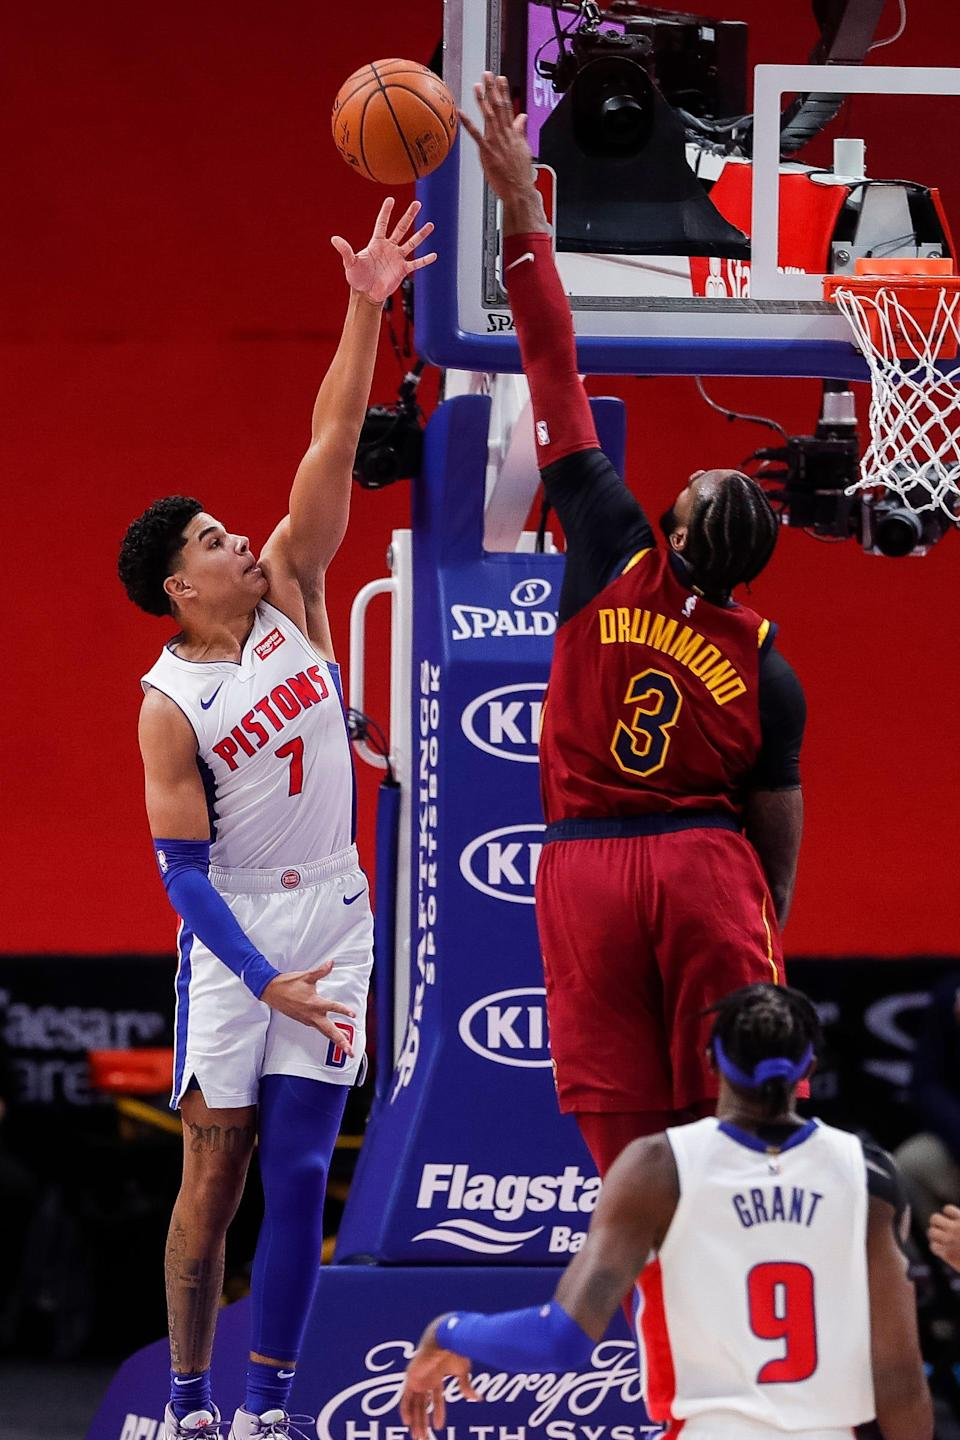 Cleveland Cavaliers center Andre Drummond blocks a layup attempt by Detroit Pistons guard Killian Hayes during the first half at Little Caesars Arena, Saturday, Dec. 26, 2020.